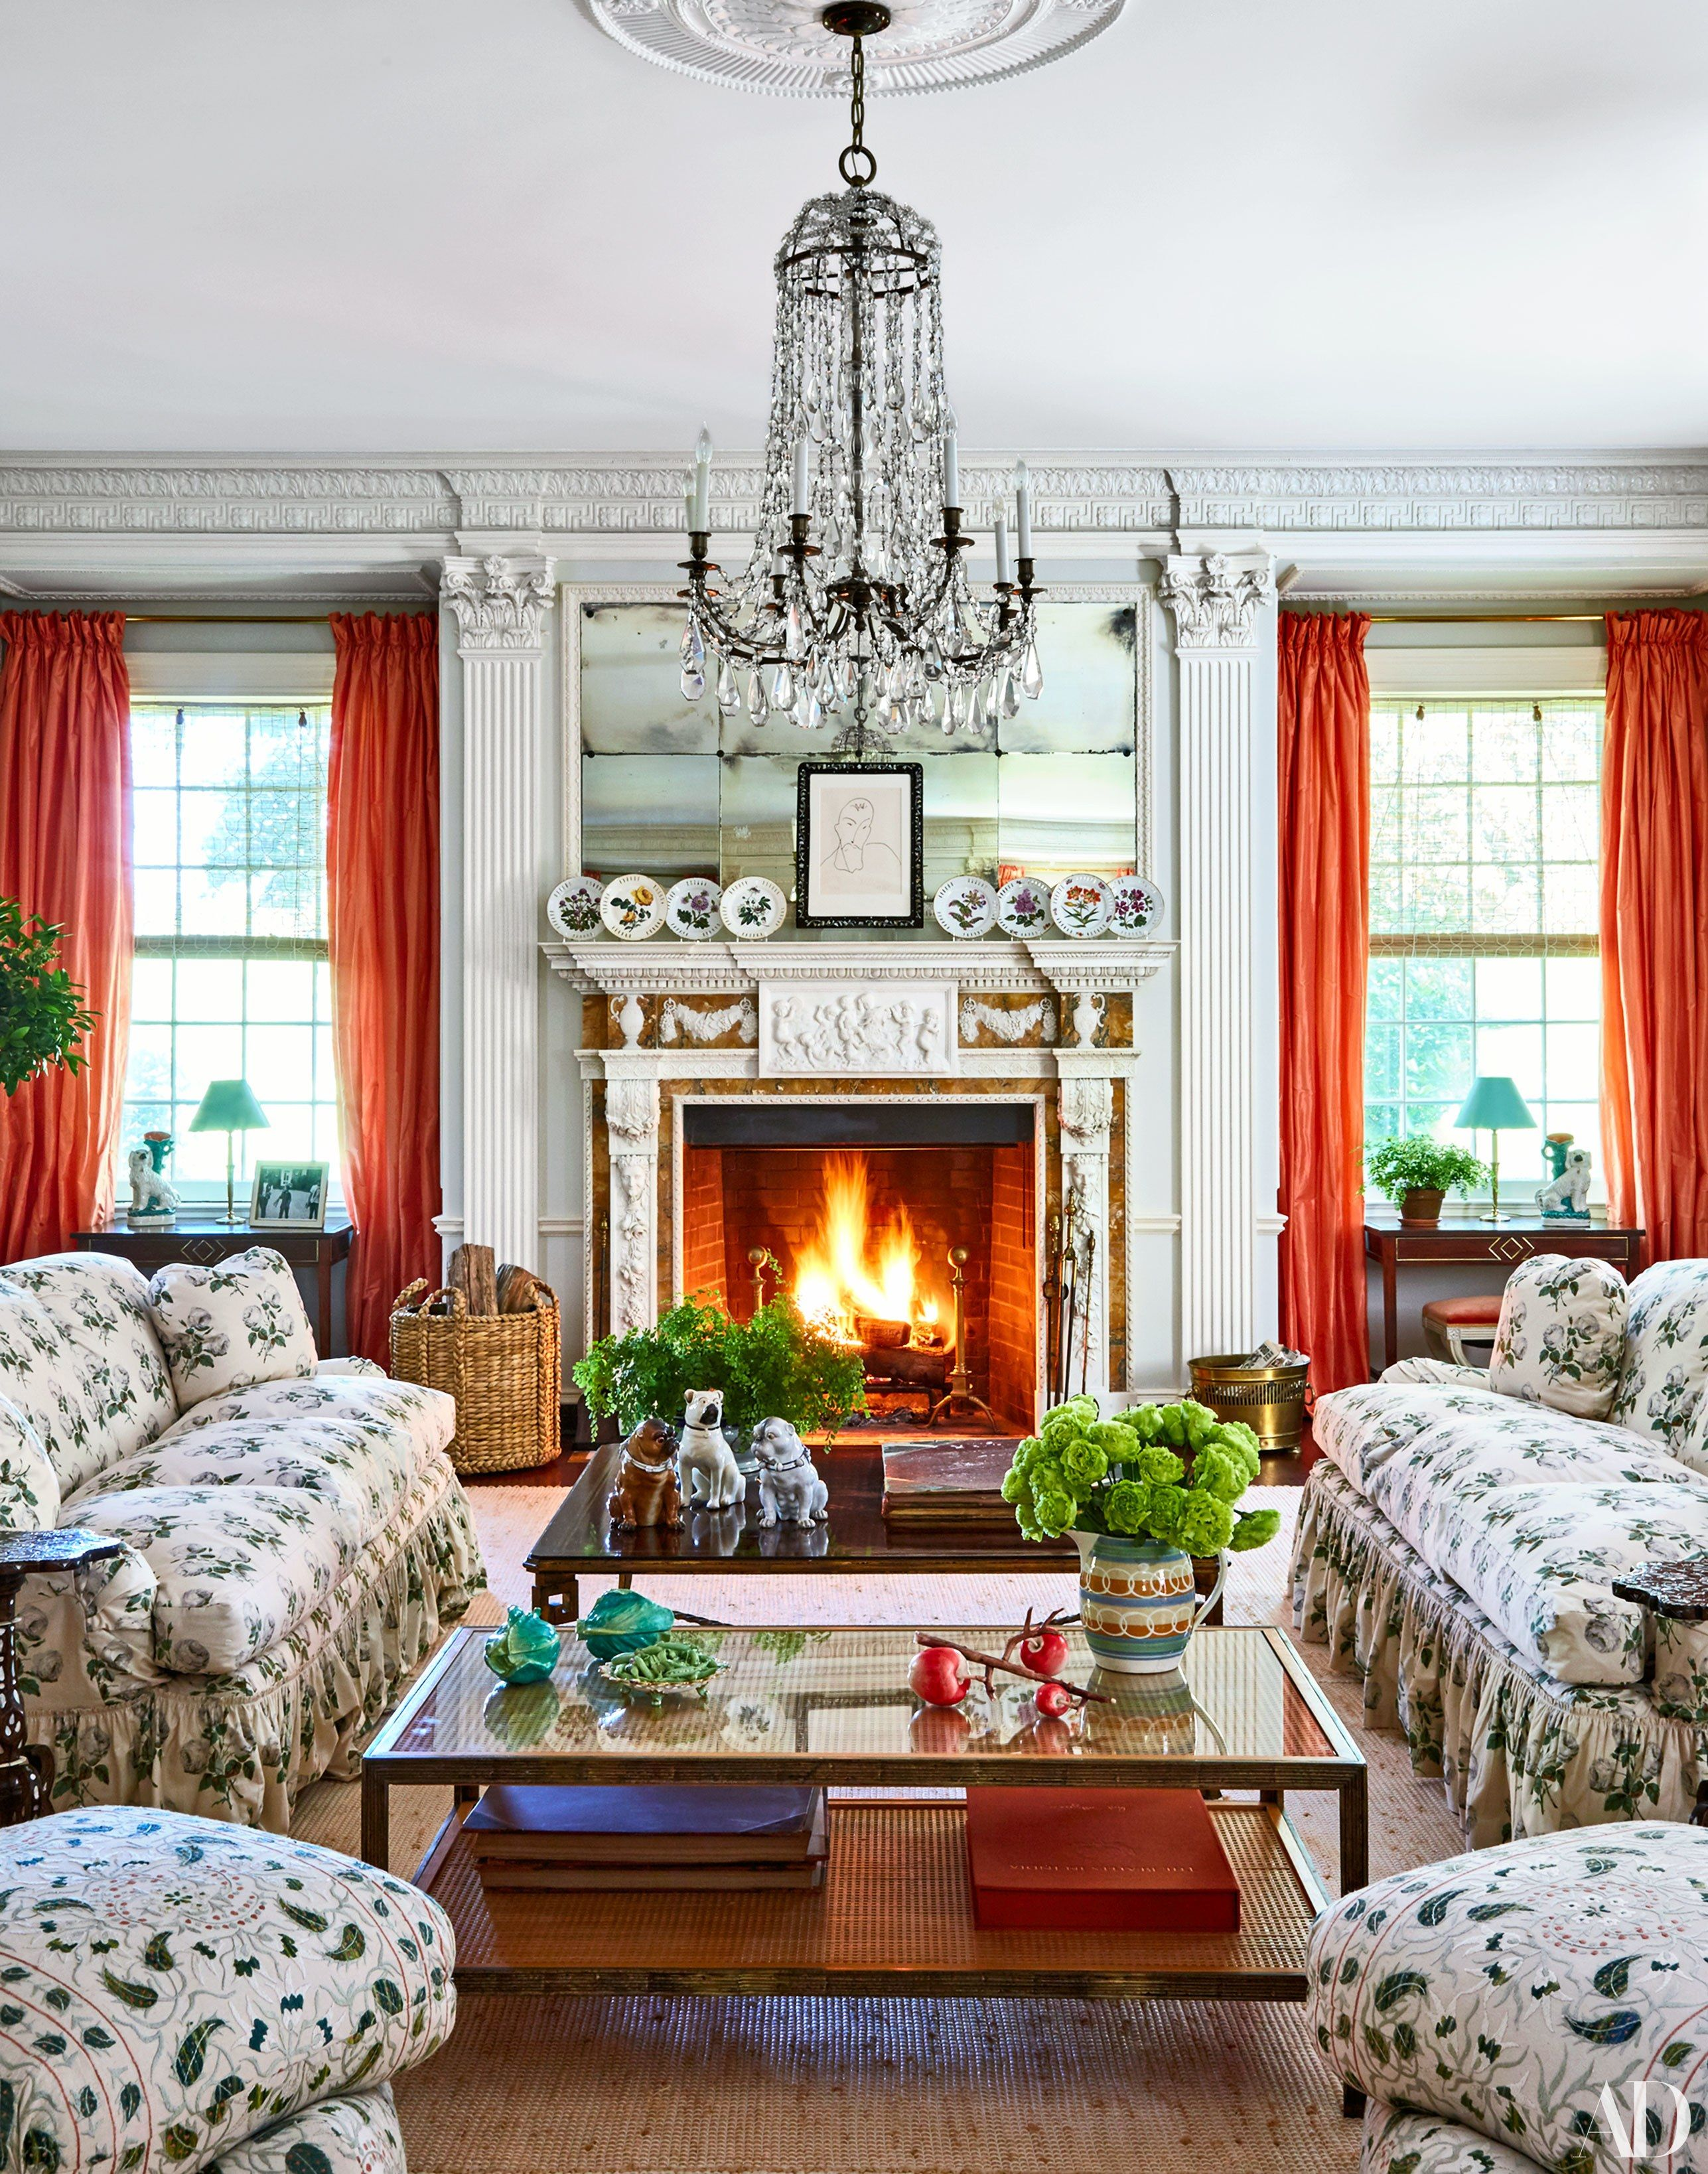 Home interior icon step inside fashion icon tory burchus home  architectural digest